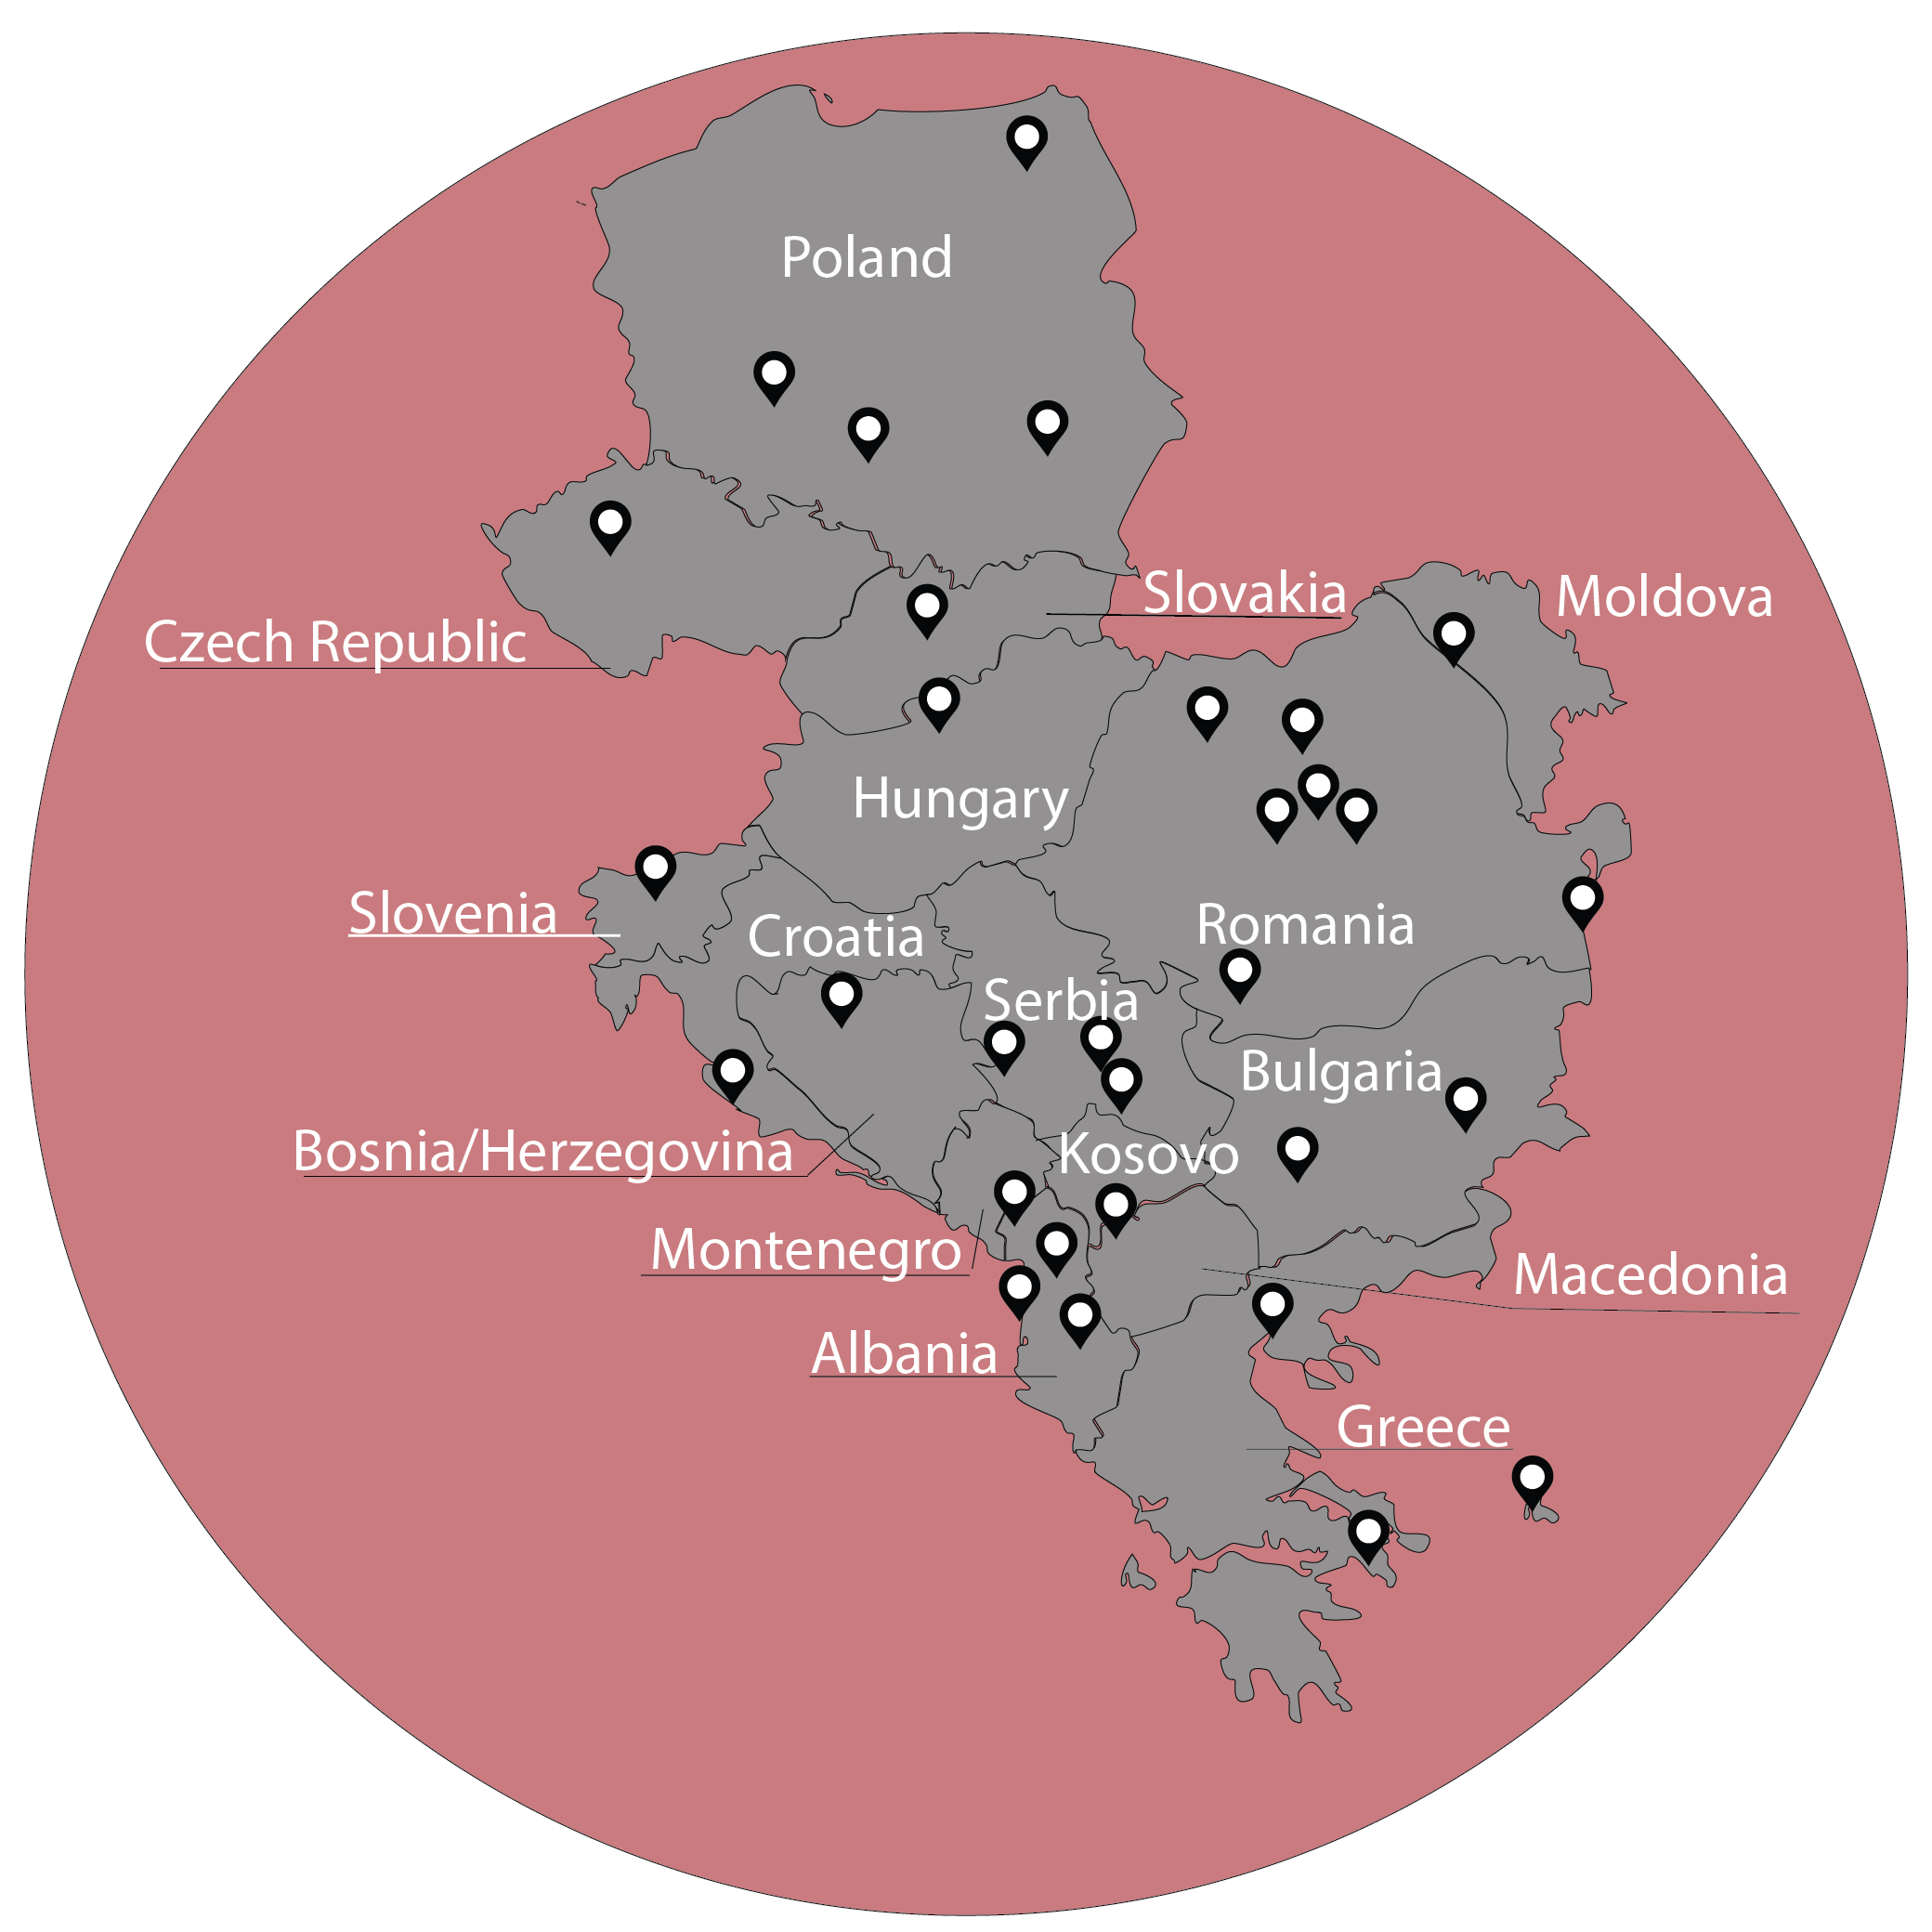 YWAM Central Europe locations